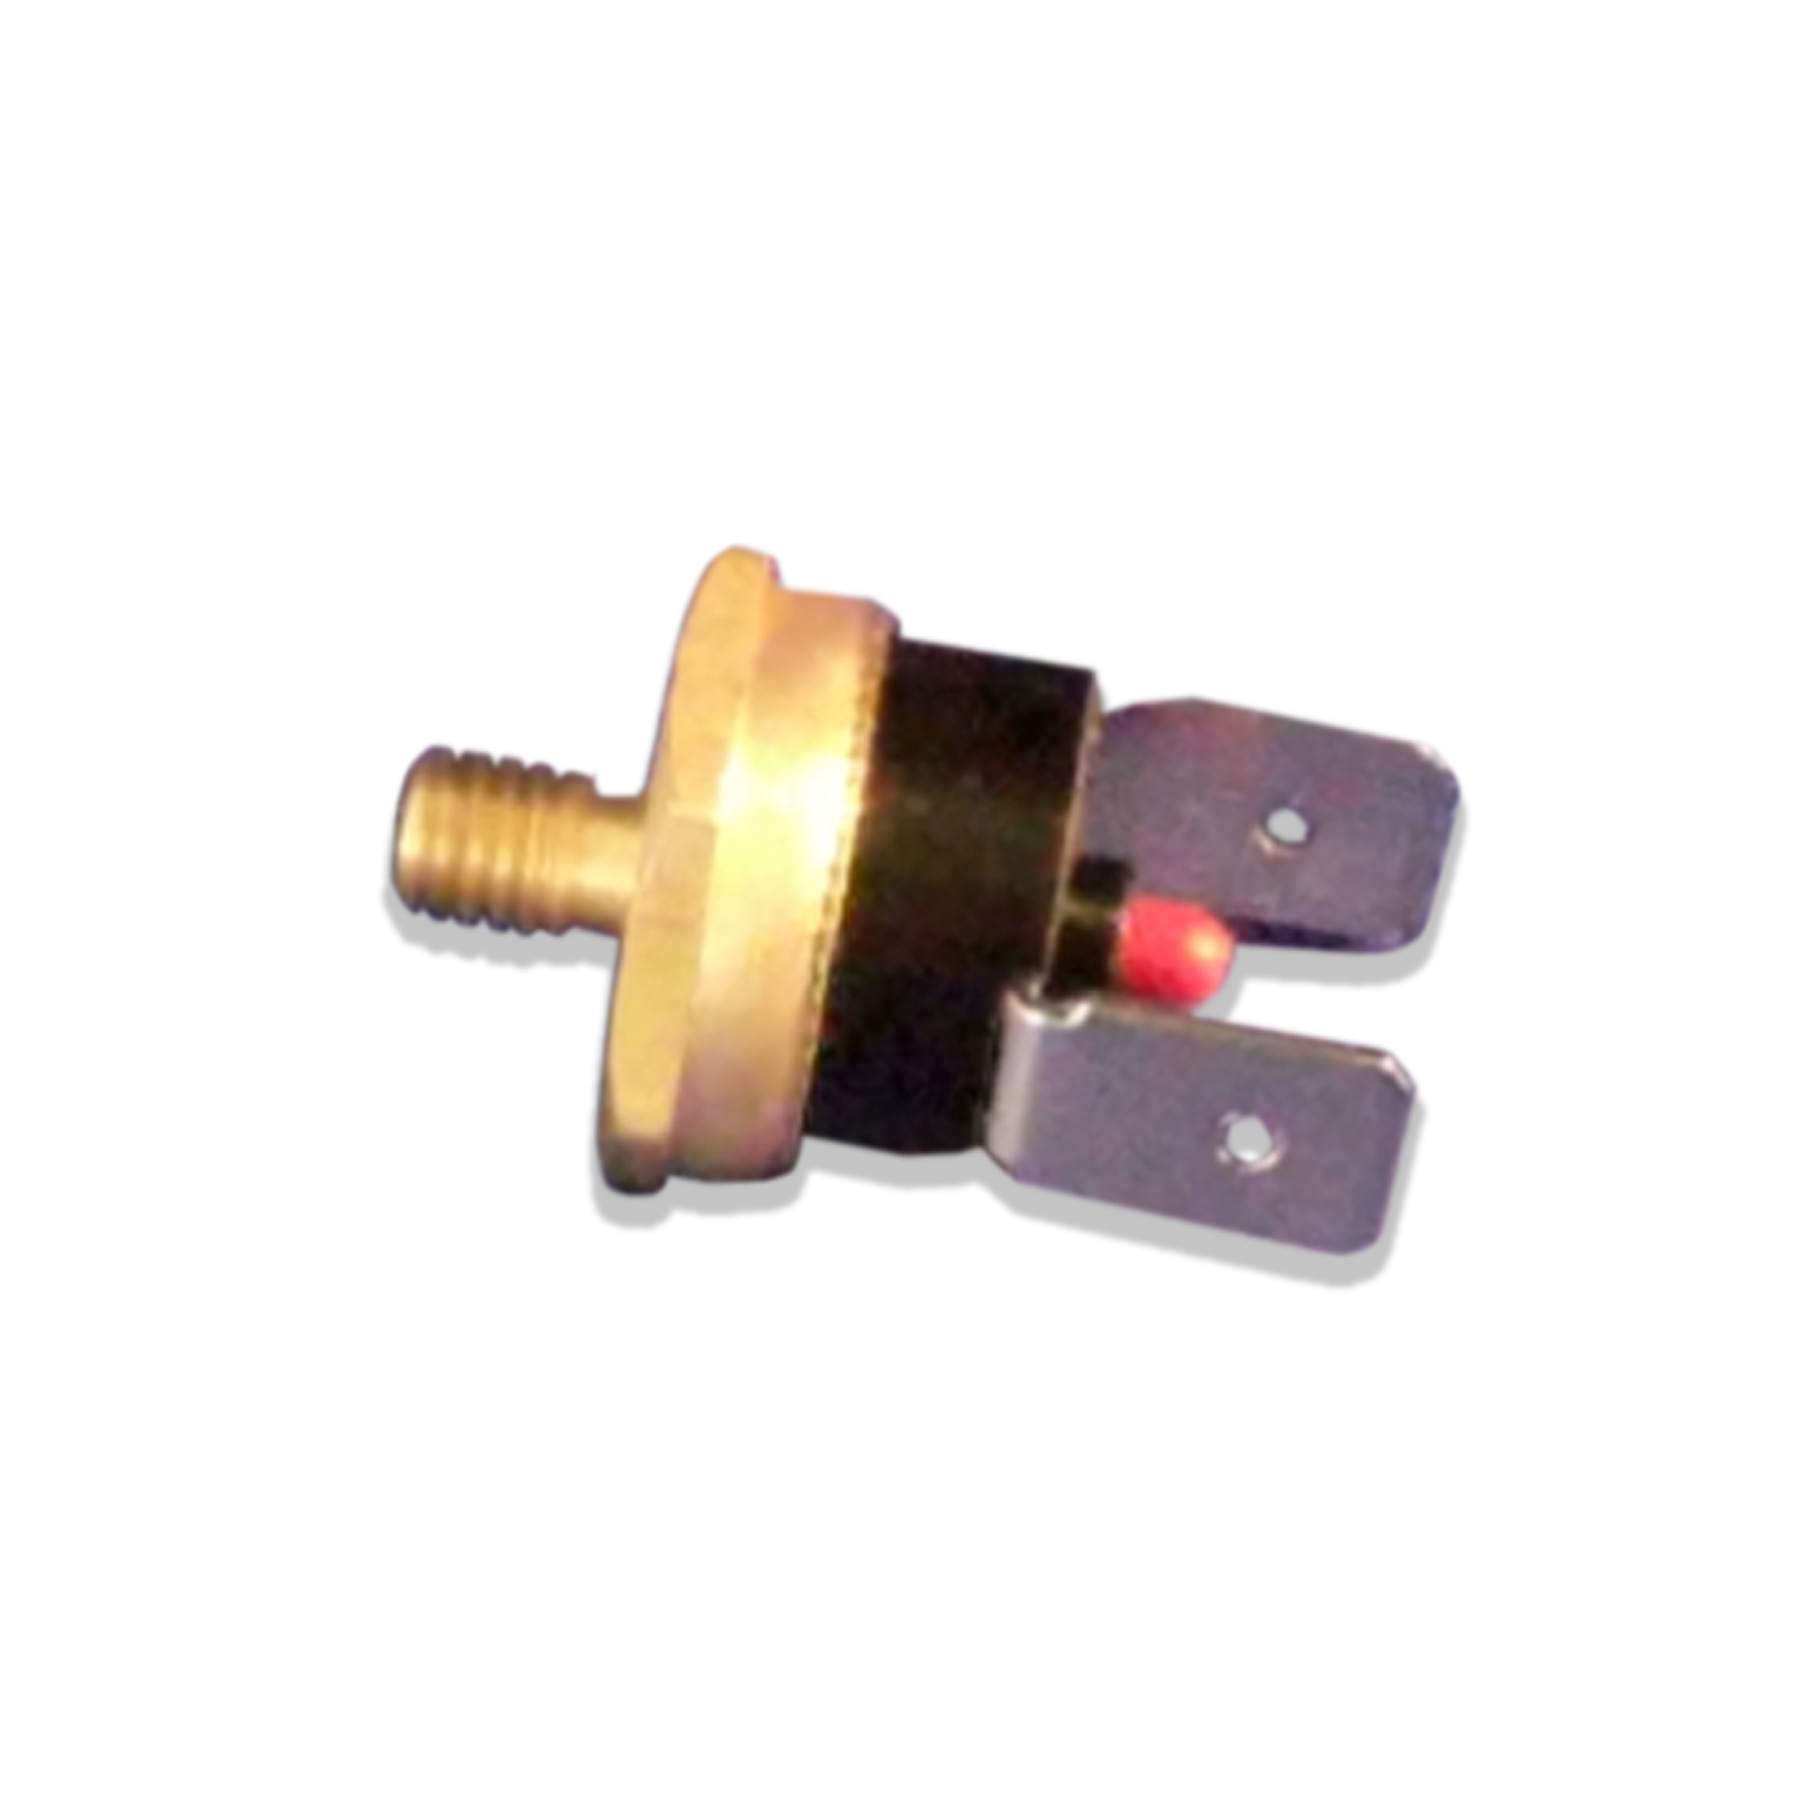 VAC High Limit 215 Degree F Thermostat w/ Spade Connectors